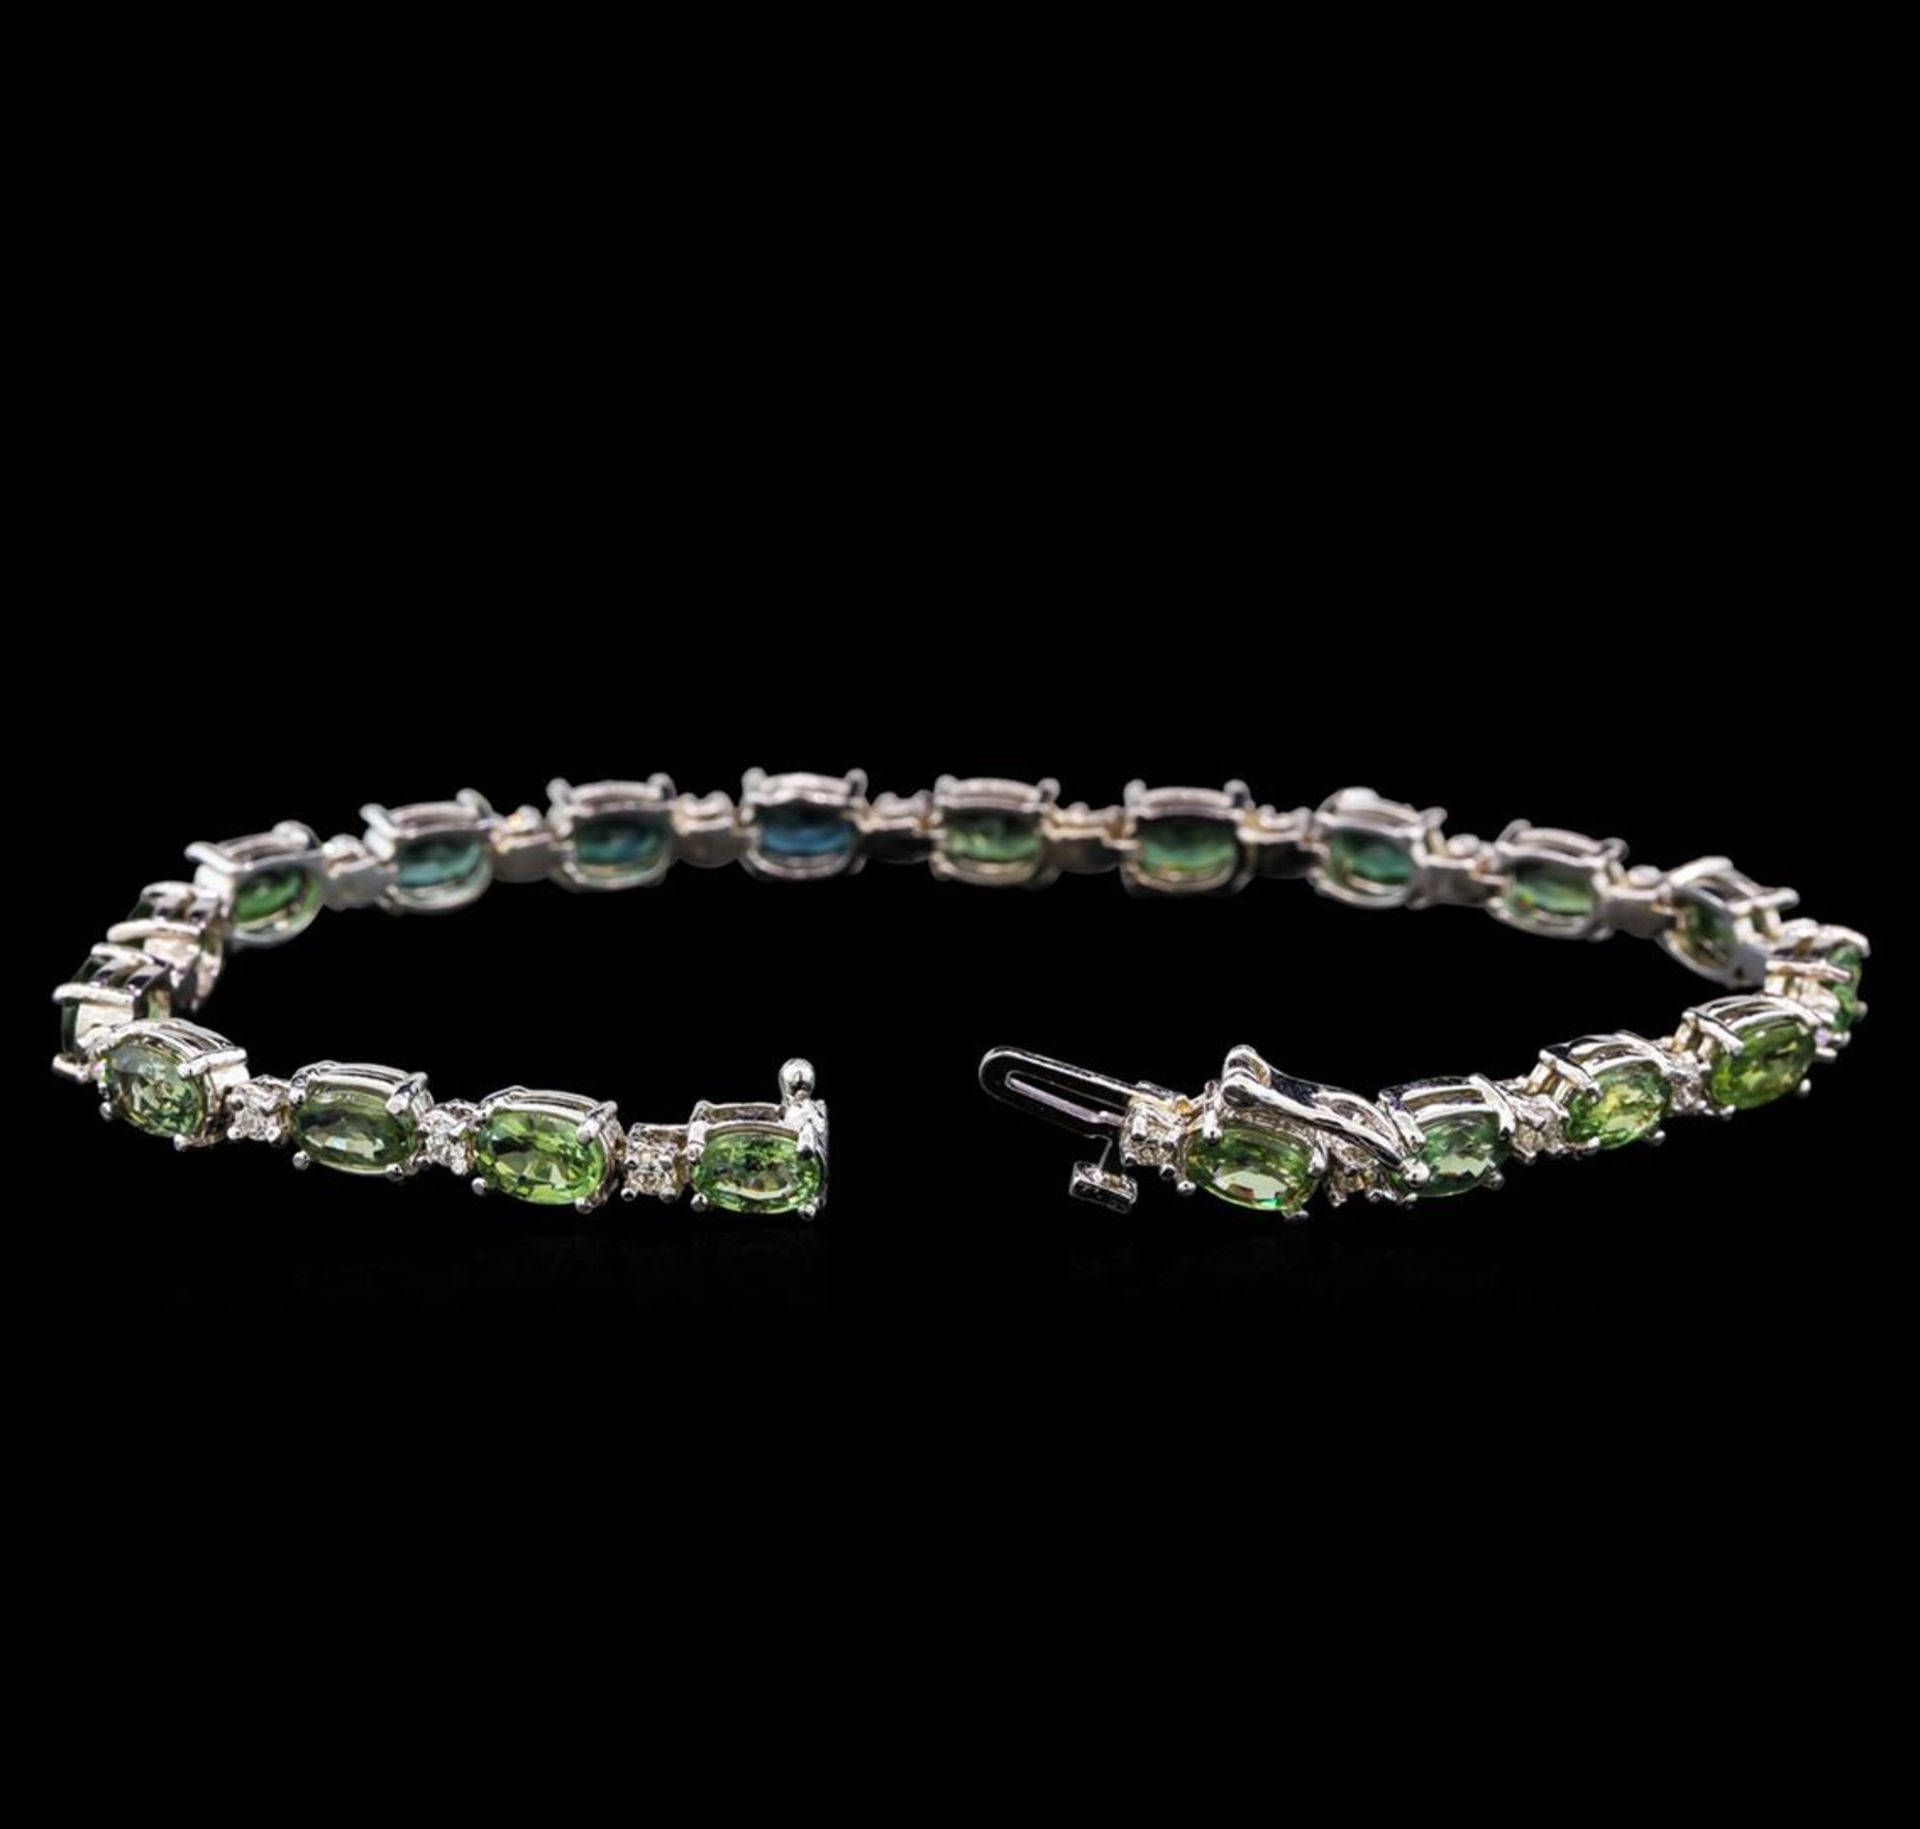 14KT White Gold 11.20 ctw Green Sapphire and Diamond Bracelet - Image 3 of 4